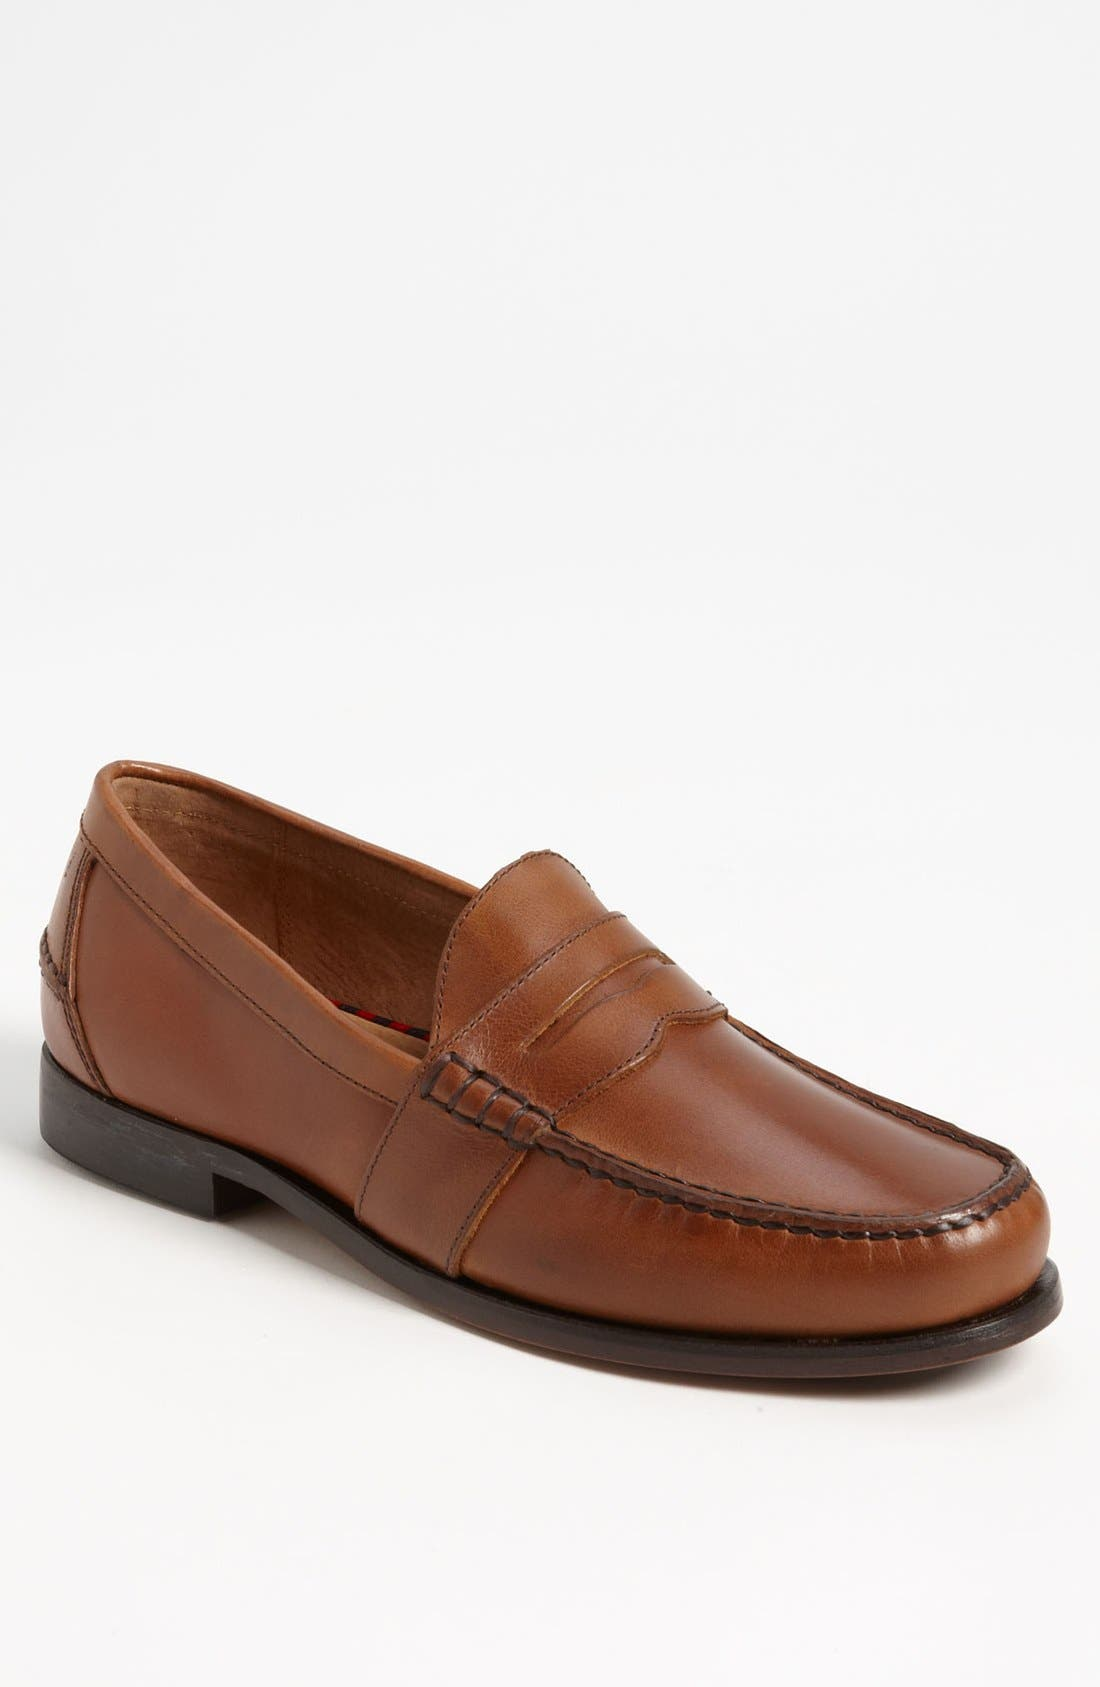 Alternate Image 1 Selected - Polo Ralph Lauren 'Arscott' Penny Loafer